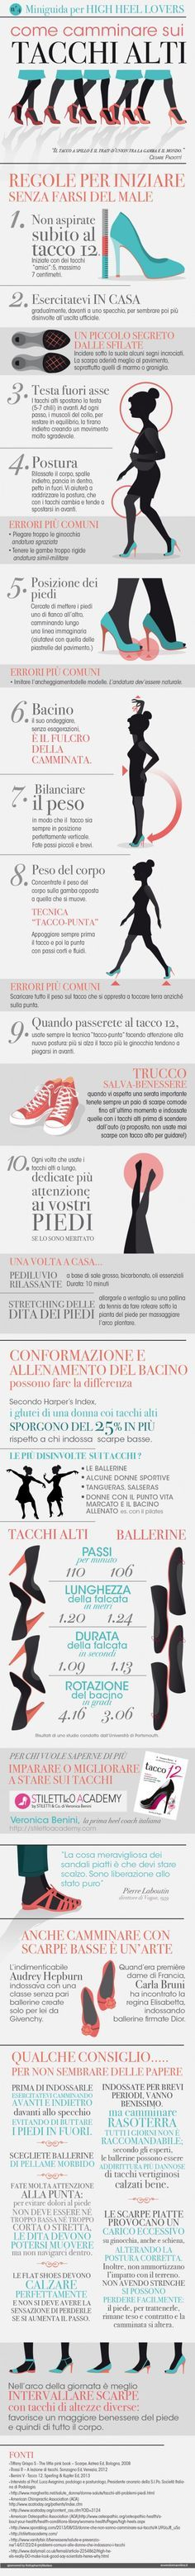 Miniguida per High Heels Lovers: come camminare - infographics designed for esseredonnaonline.it- illustrated by Alice Kle Borghi, kleland.com